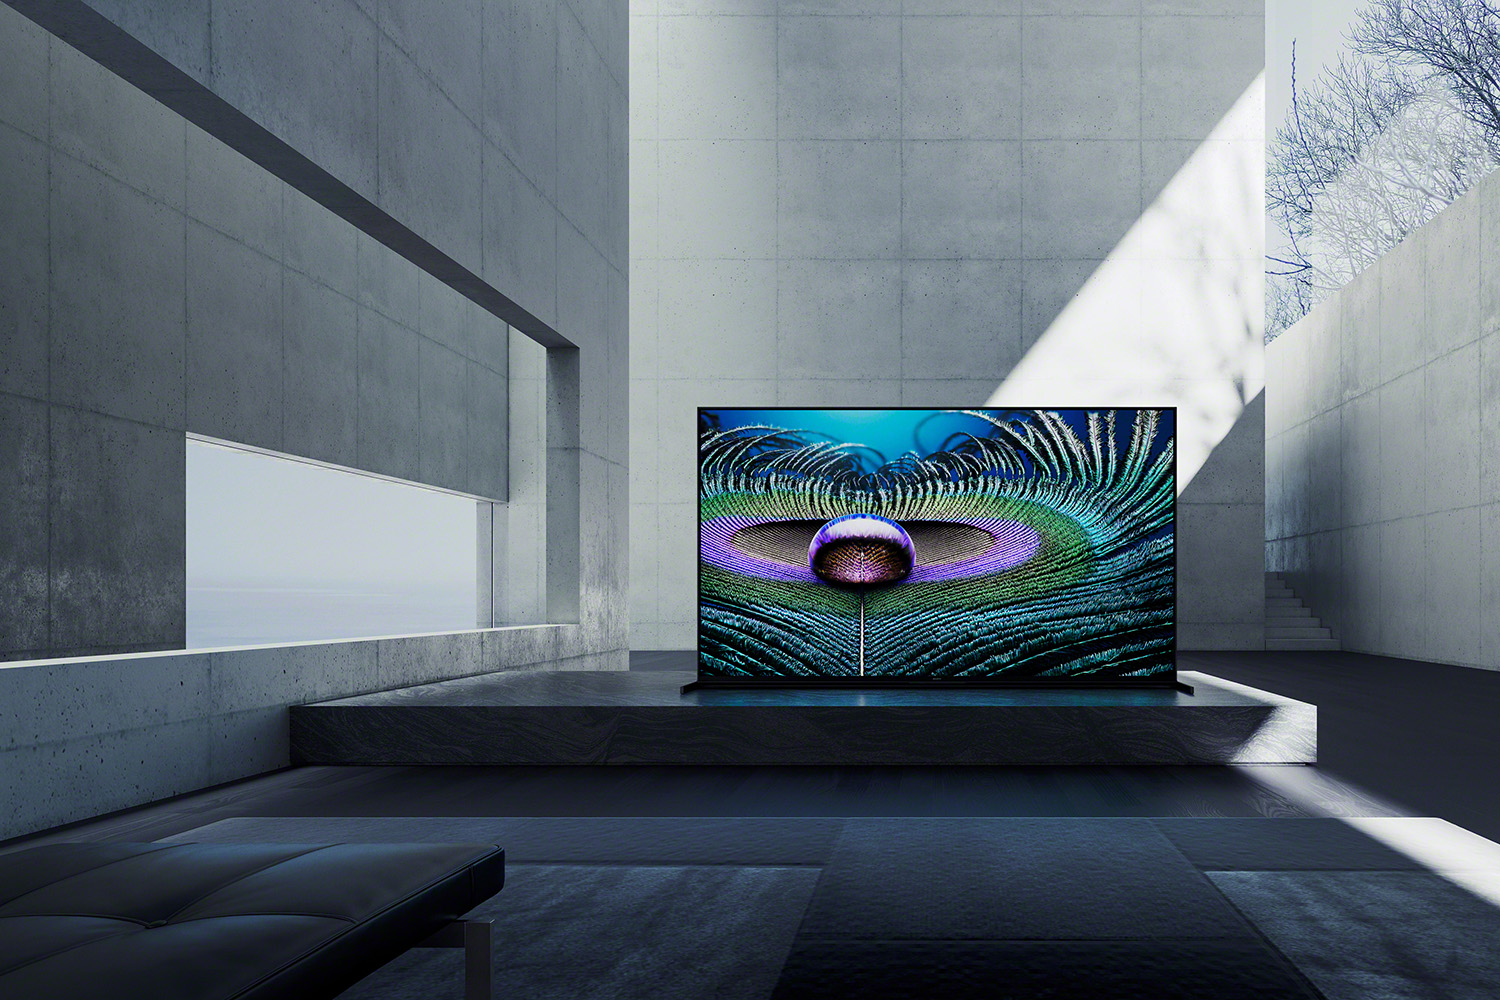 Sony's new TV lineup claims to see like a human